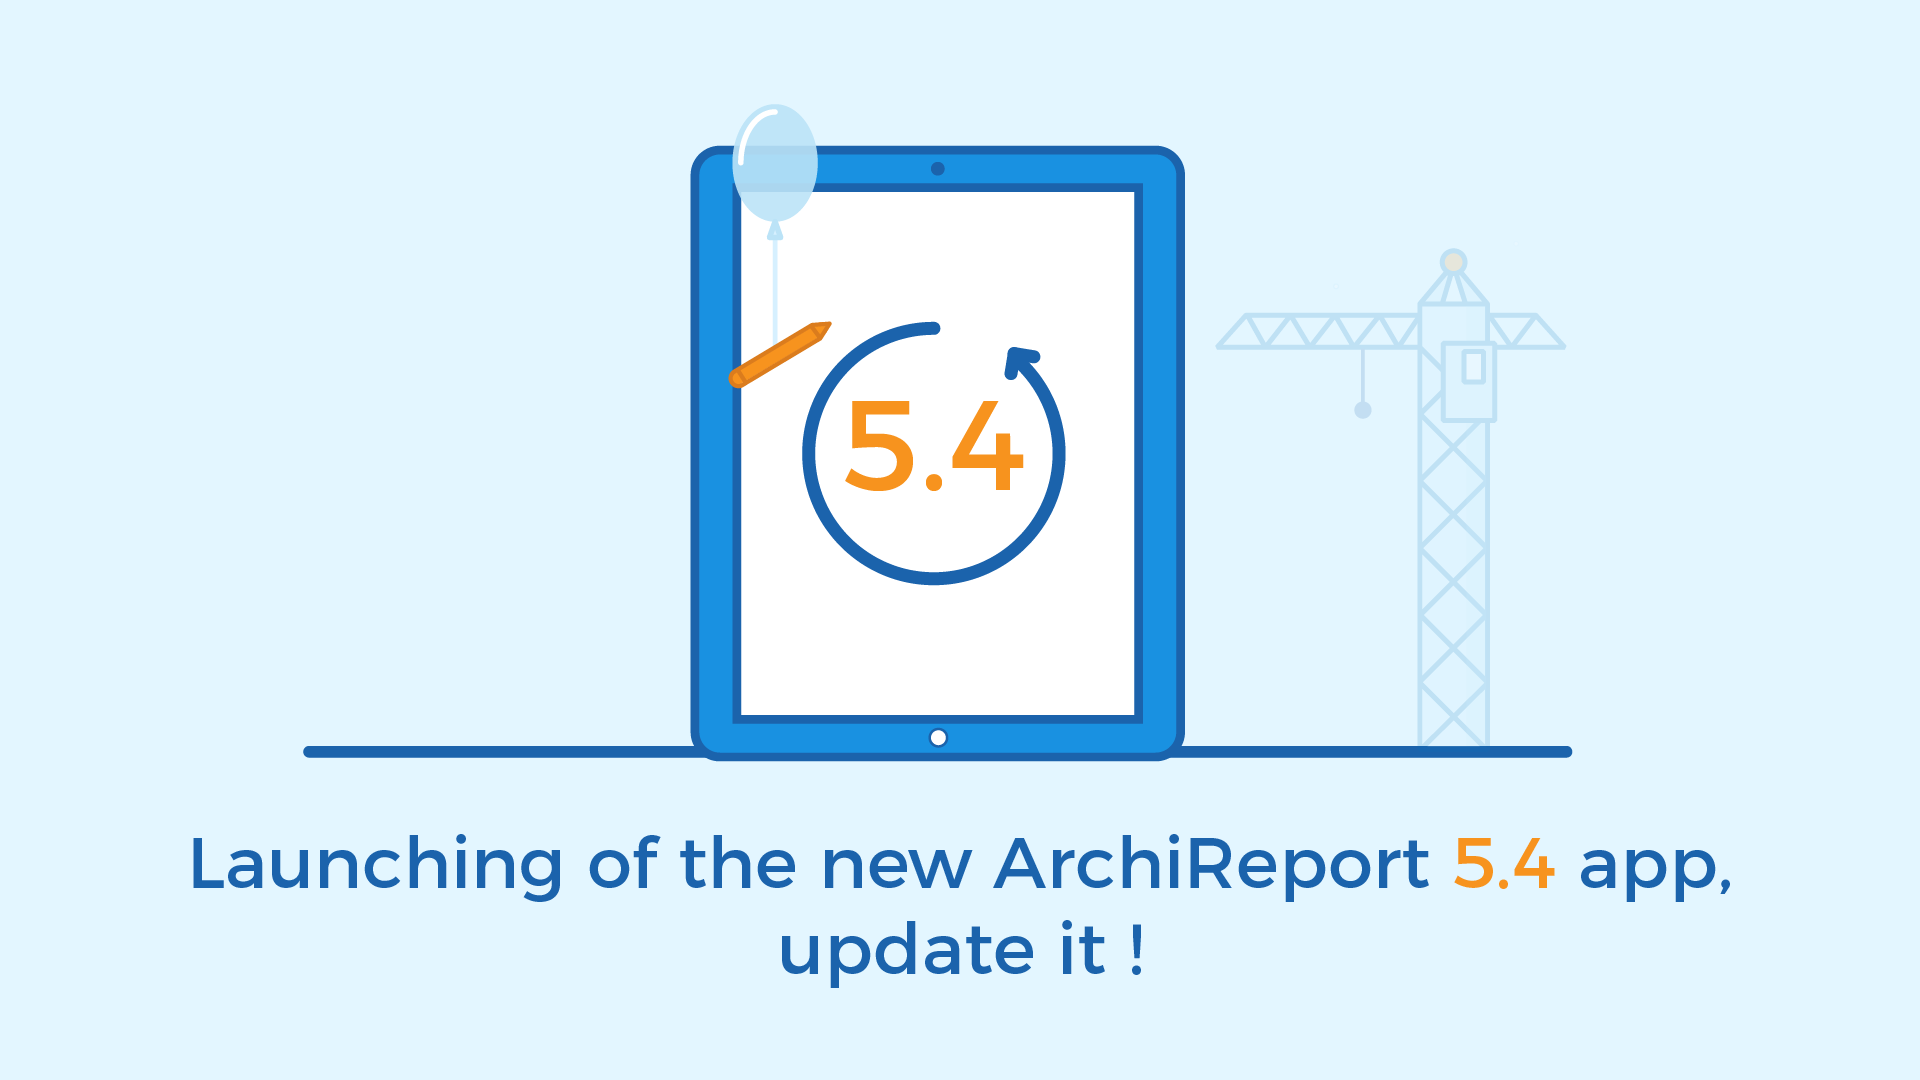 5.4 version archireport